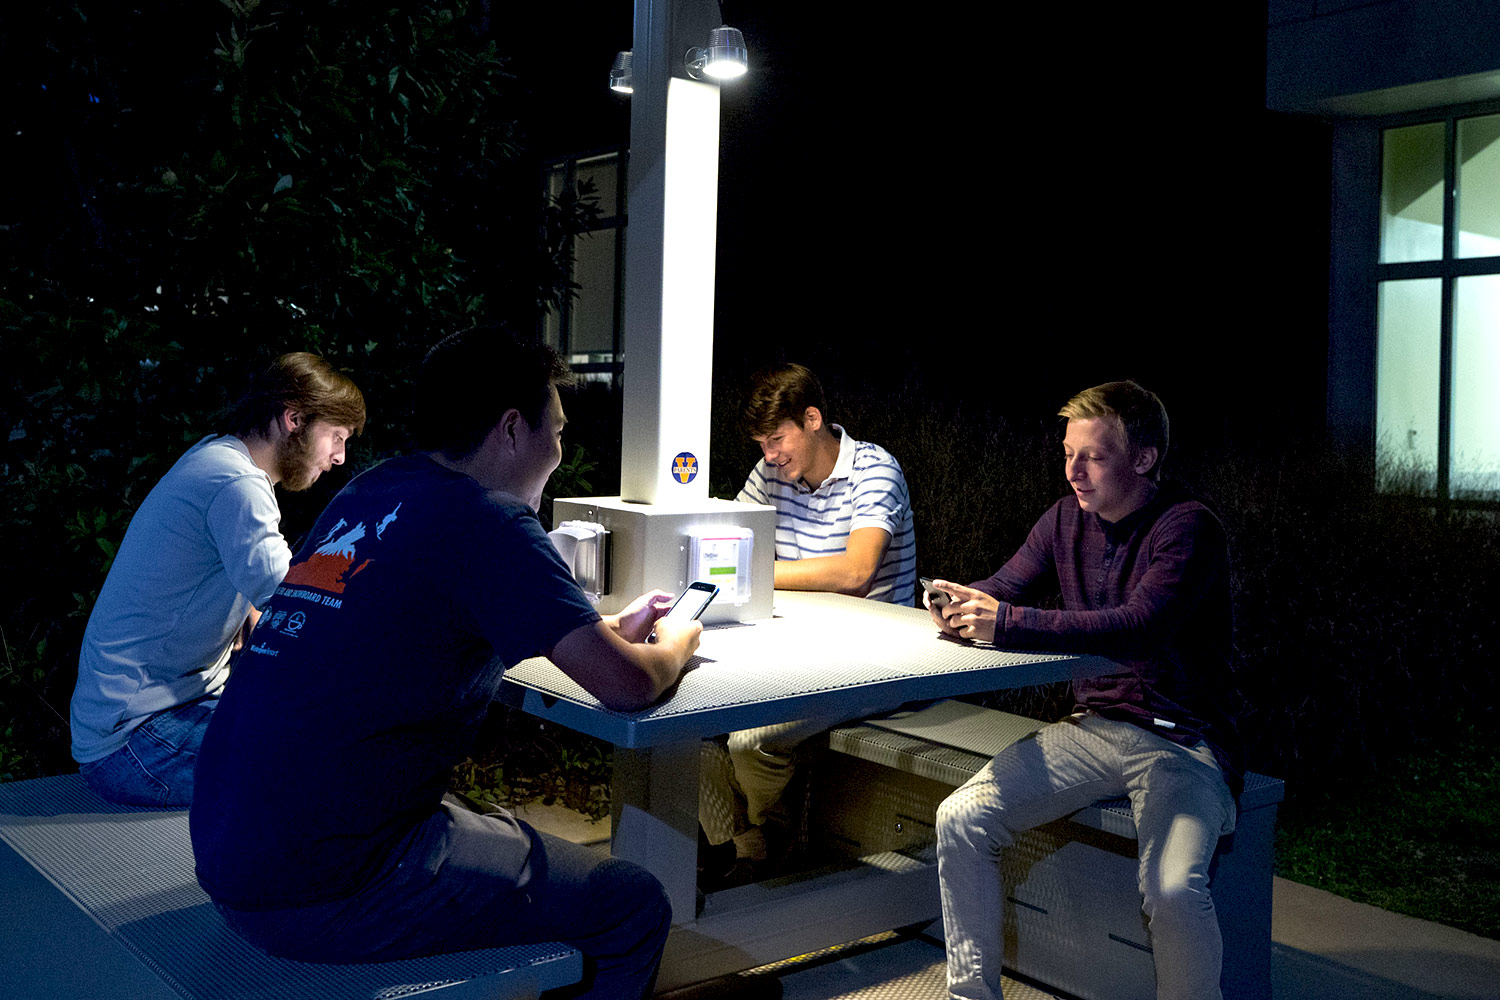 From left, students Kevin Meyers, Christopher Kim, Matt Denecke and Nicholas Anselmo use their mobile telephones at Lile-Maupin House's solar table. (Photo by Sanjay Suchak, University Communications)